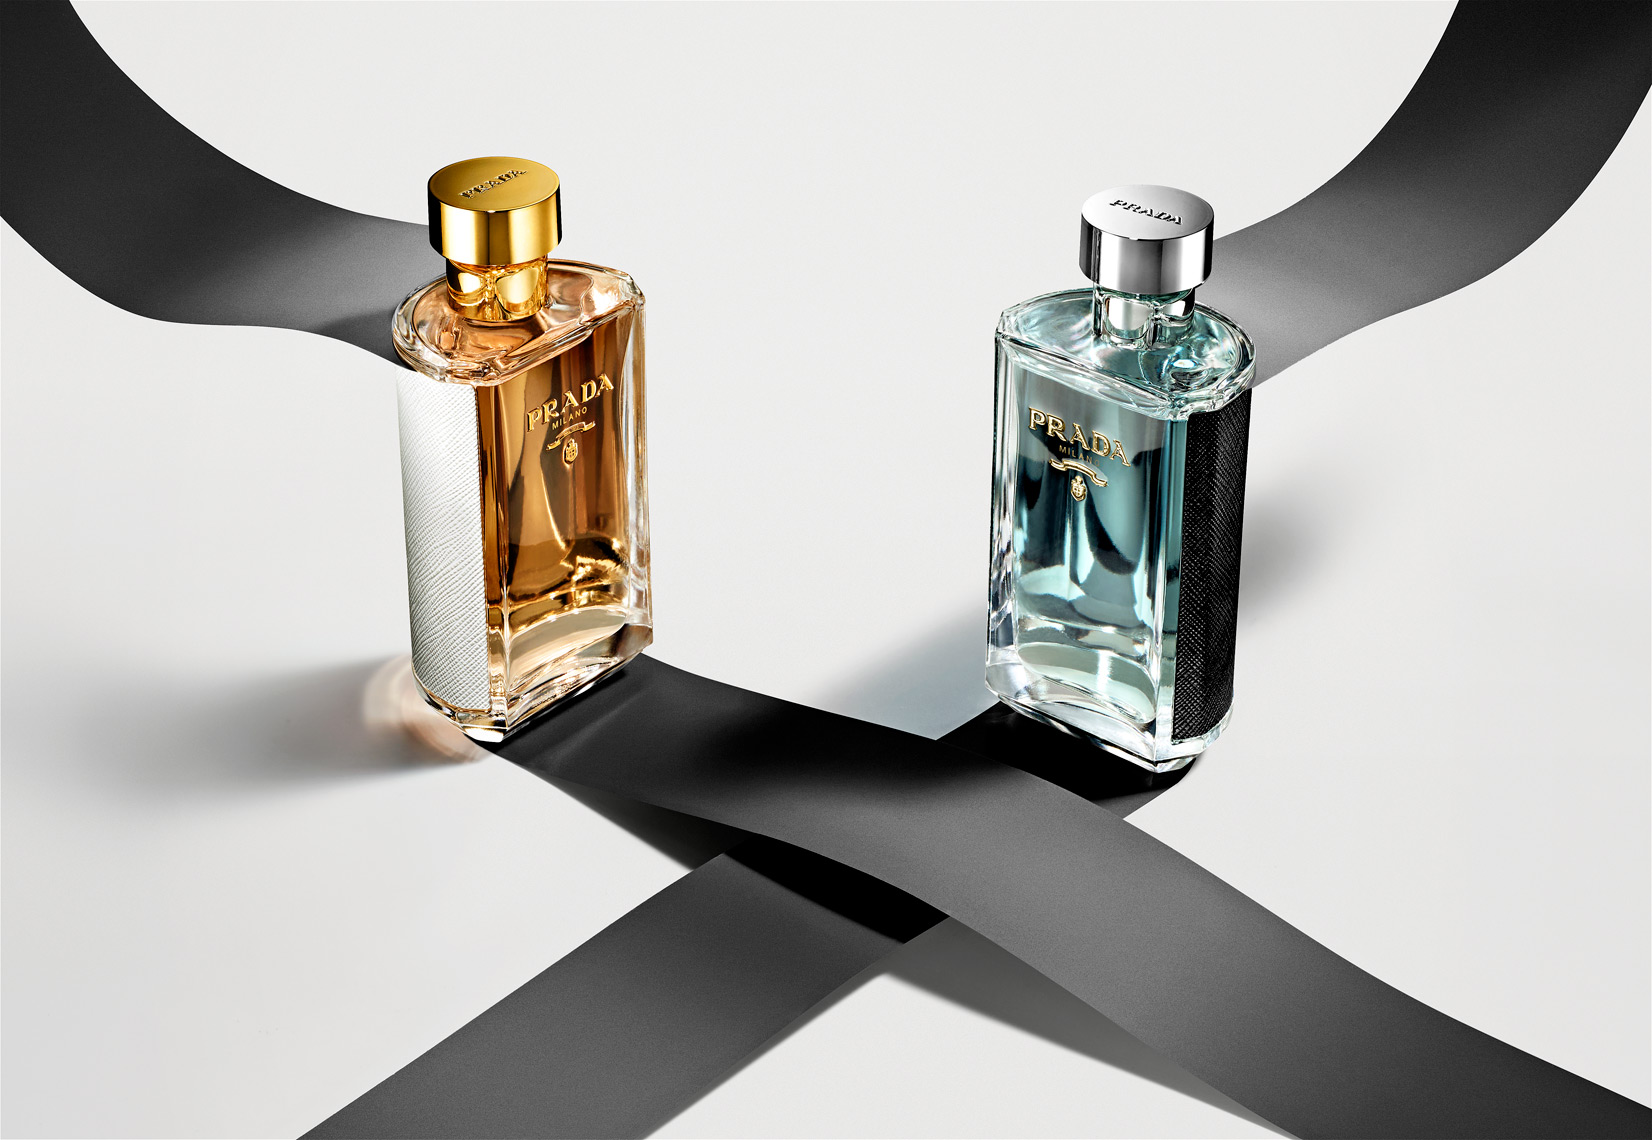 prada_fragrances_web